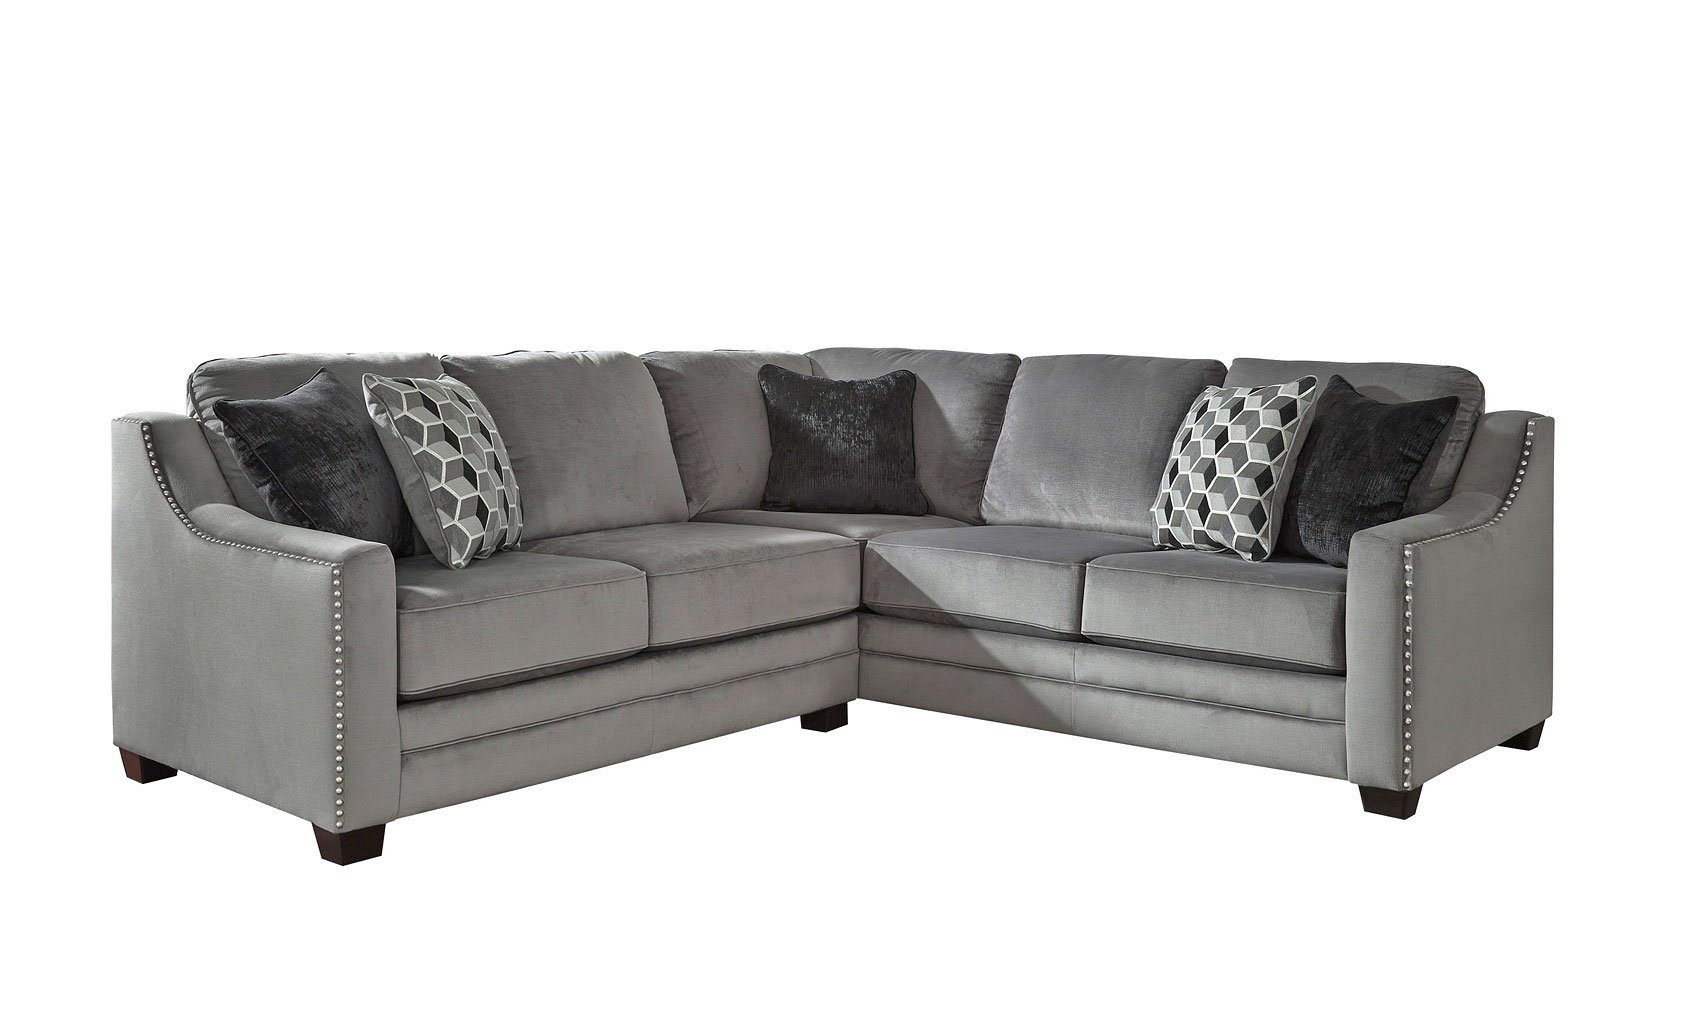 Loveseat Sectional | Whitecraftwoodard Mona Wicker Right Arm Regarding Taron 3 Piece Power Reclining Sectionals With Left Facing Console Loveseat (Image 14 of 25)